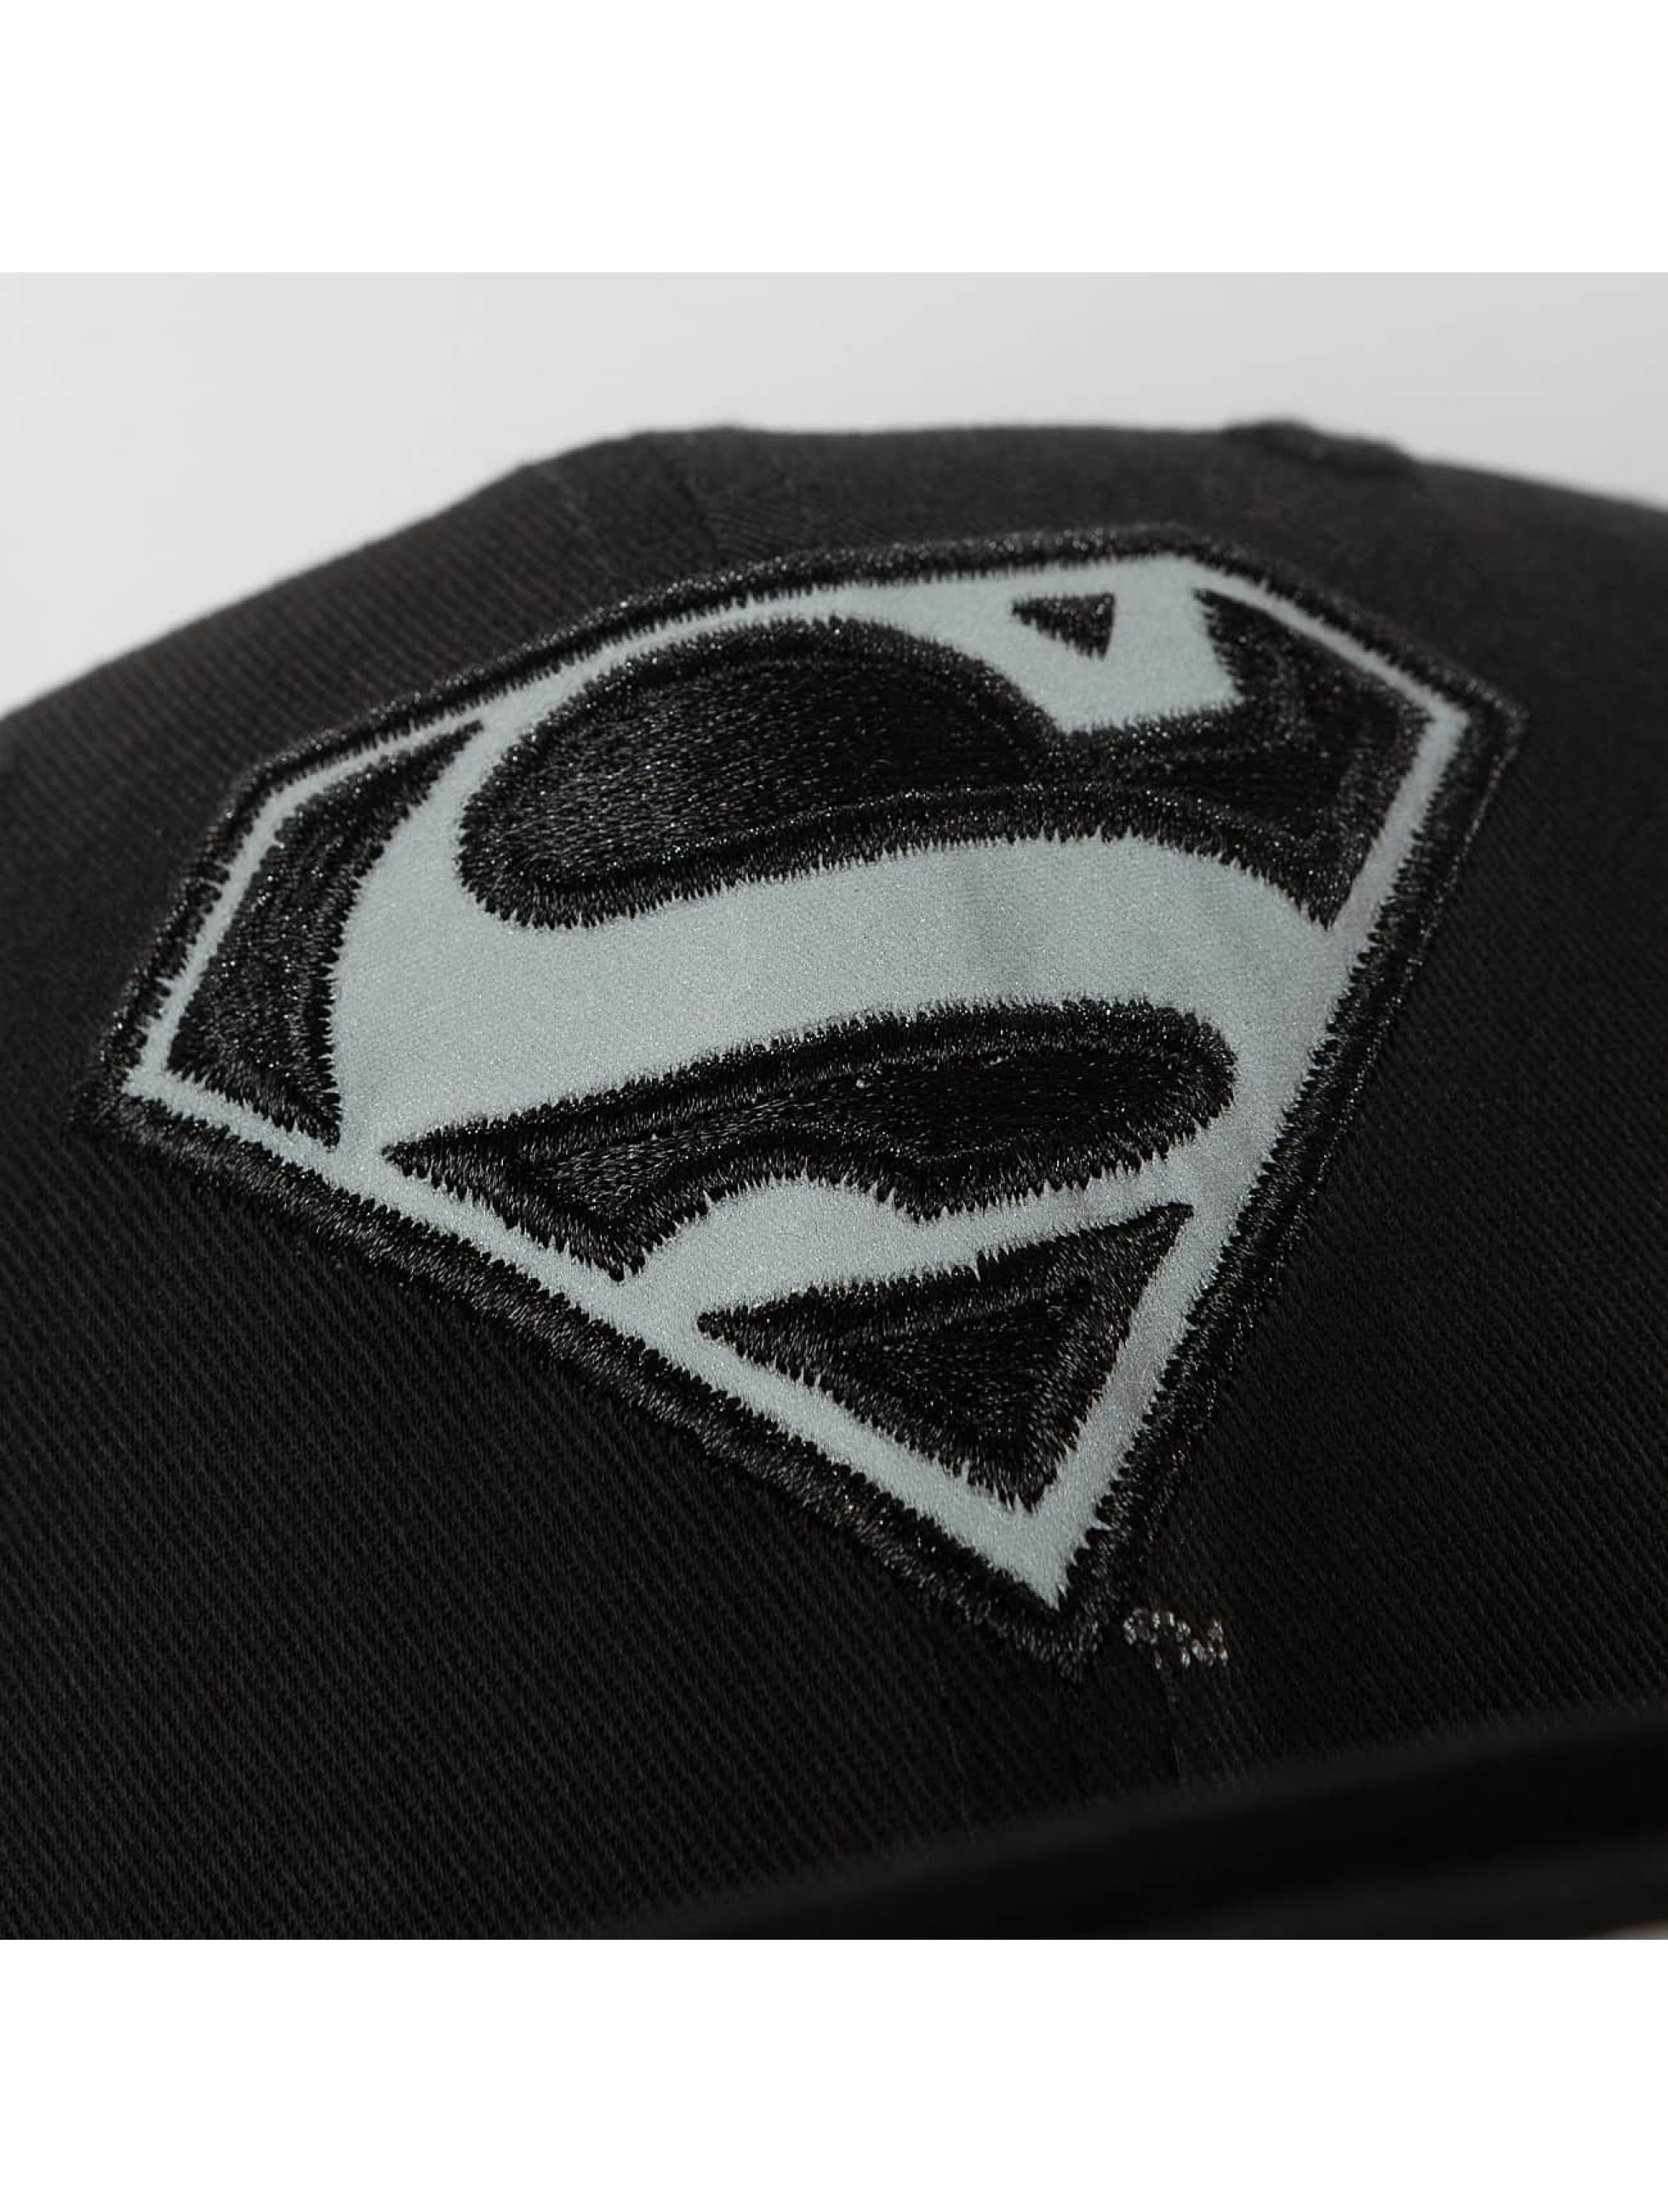 New Era Snapback Cap Reflect Superman 9Fifty black